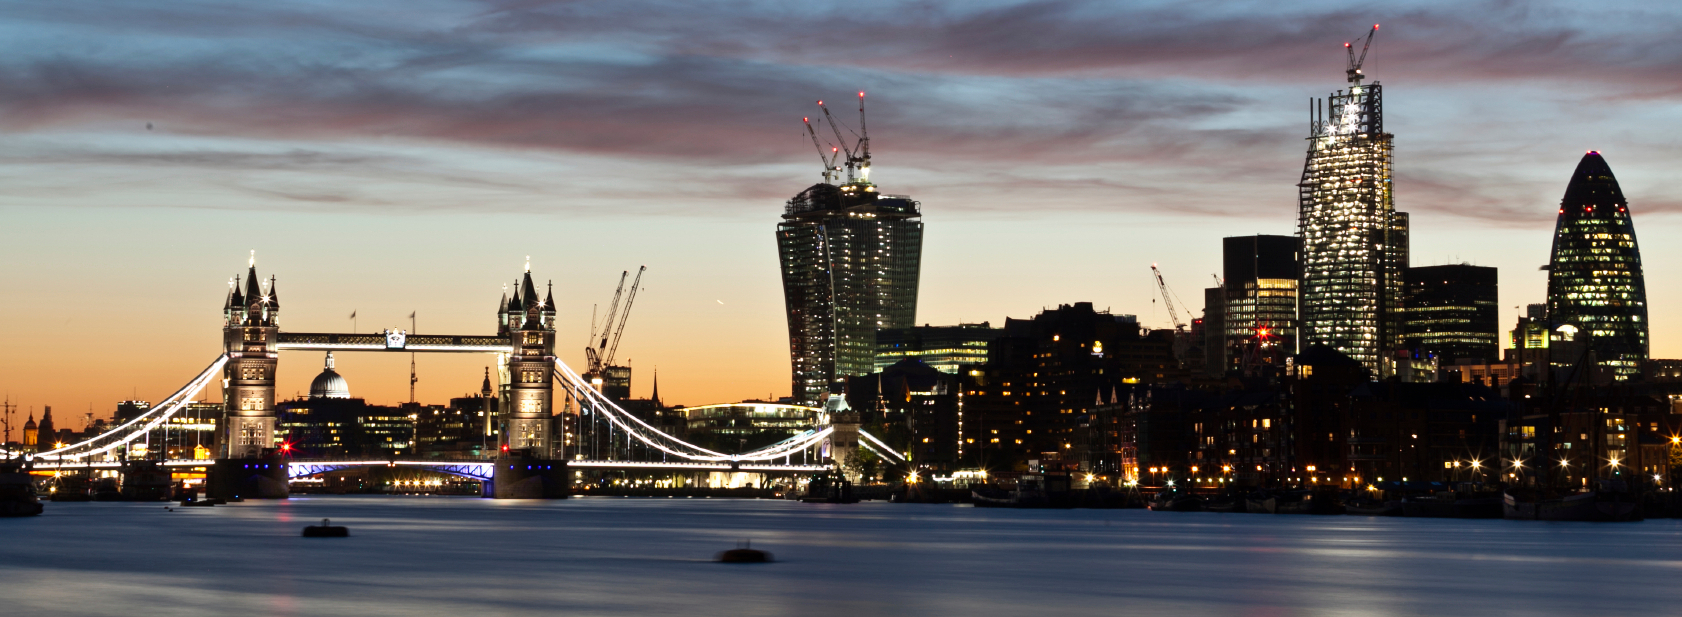 London_bridge_skyline_cristapper_i2